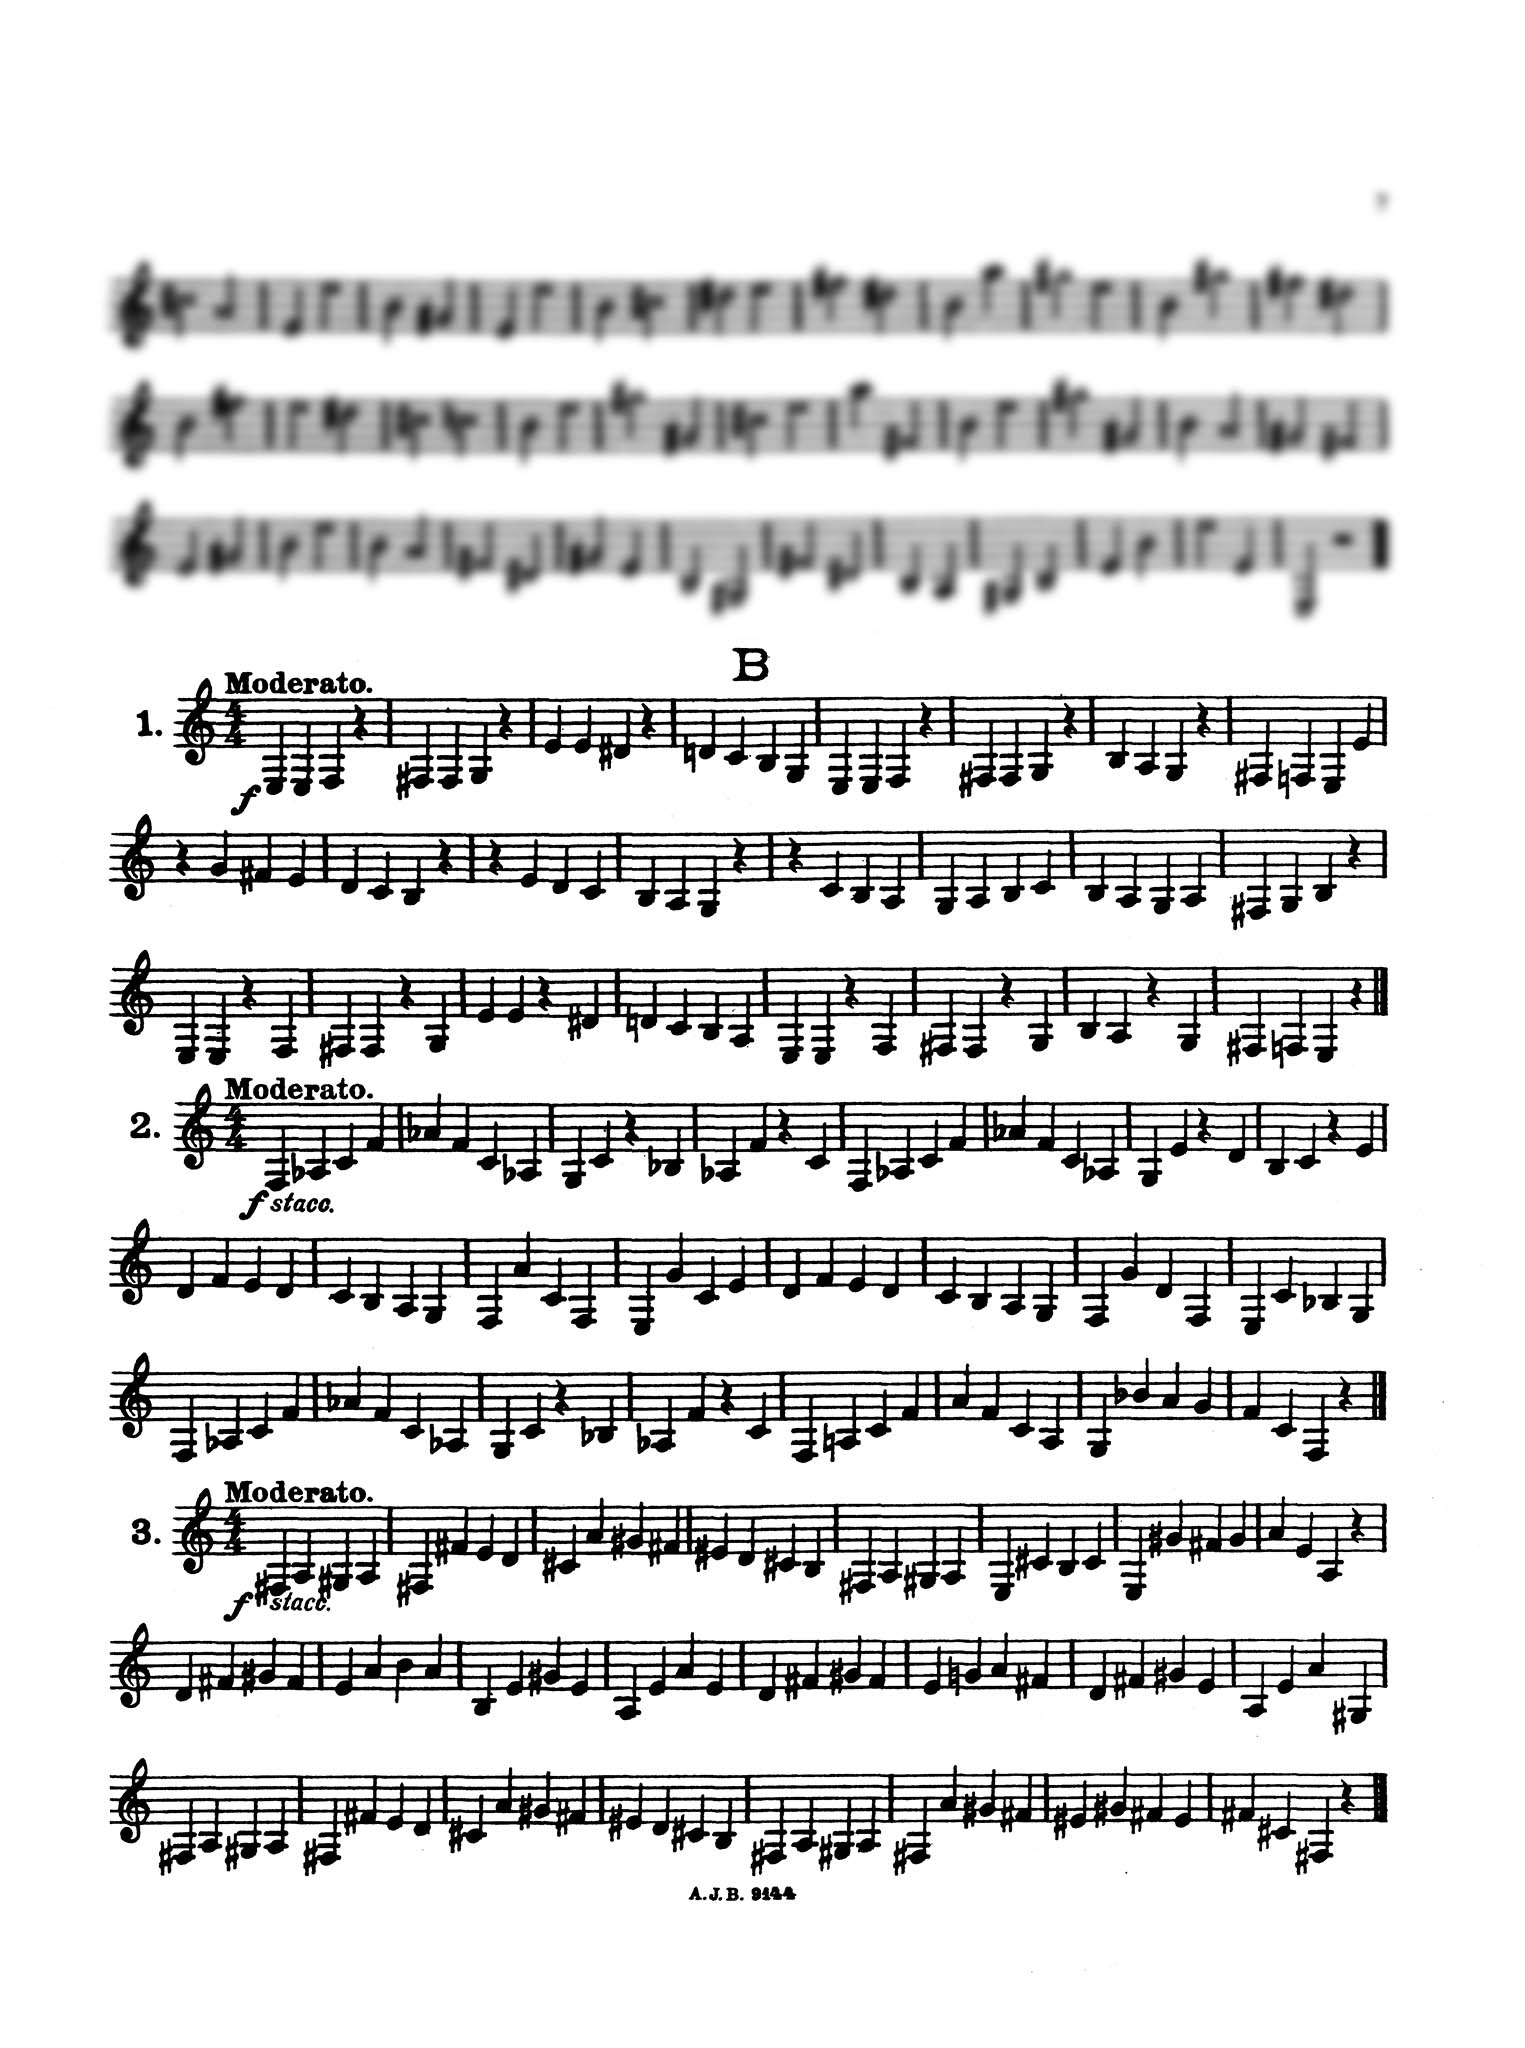 Practical Staccato School for Clarinet, Book 1 Page 7